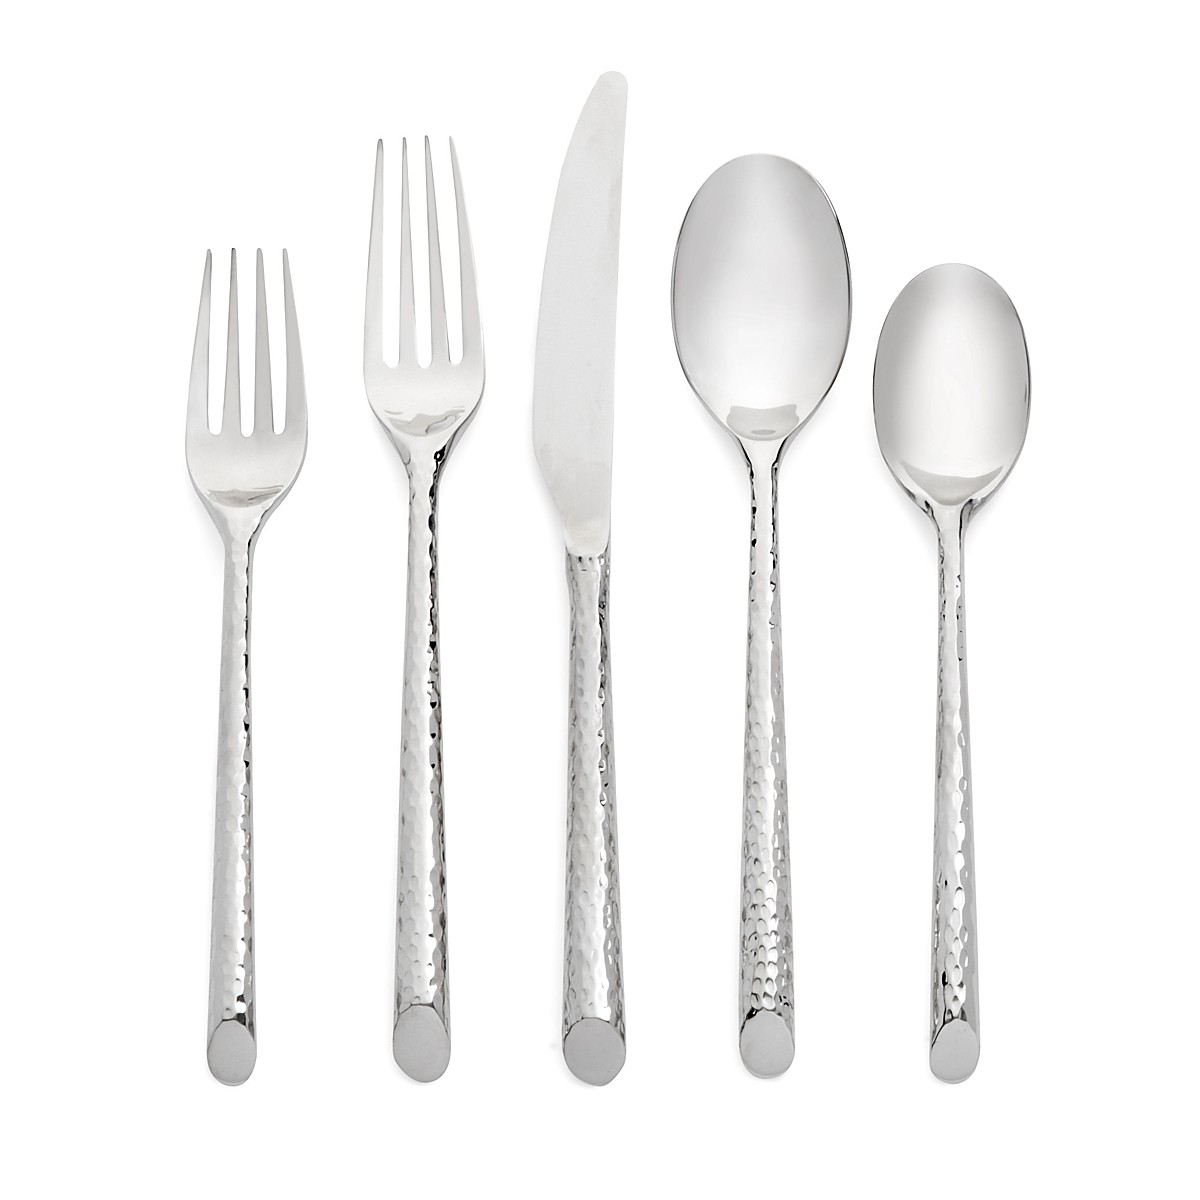 Charming cambridge flatware 5 pcs silverware flatware for kitchen or dining Ideas